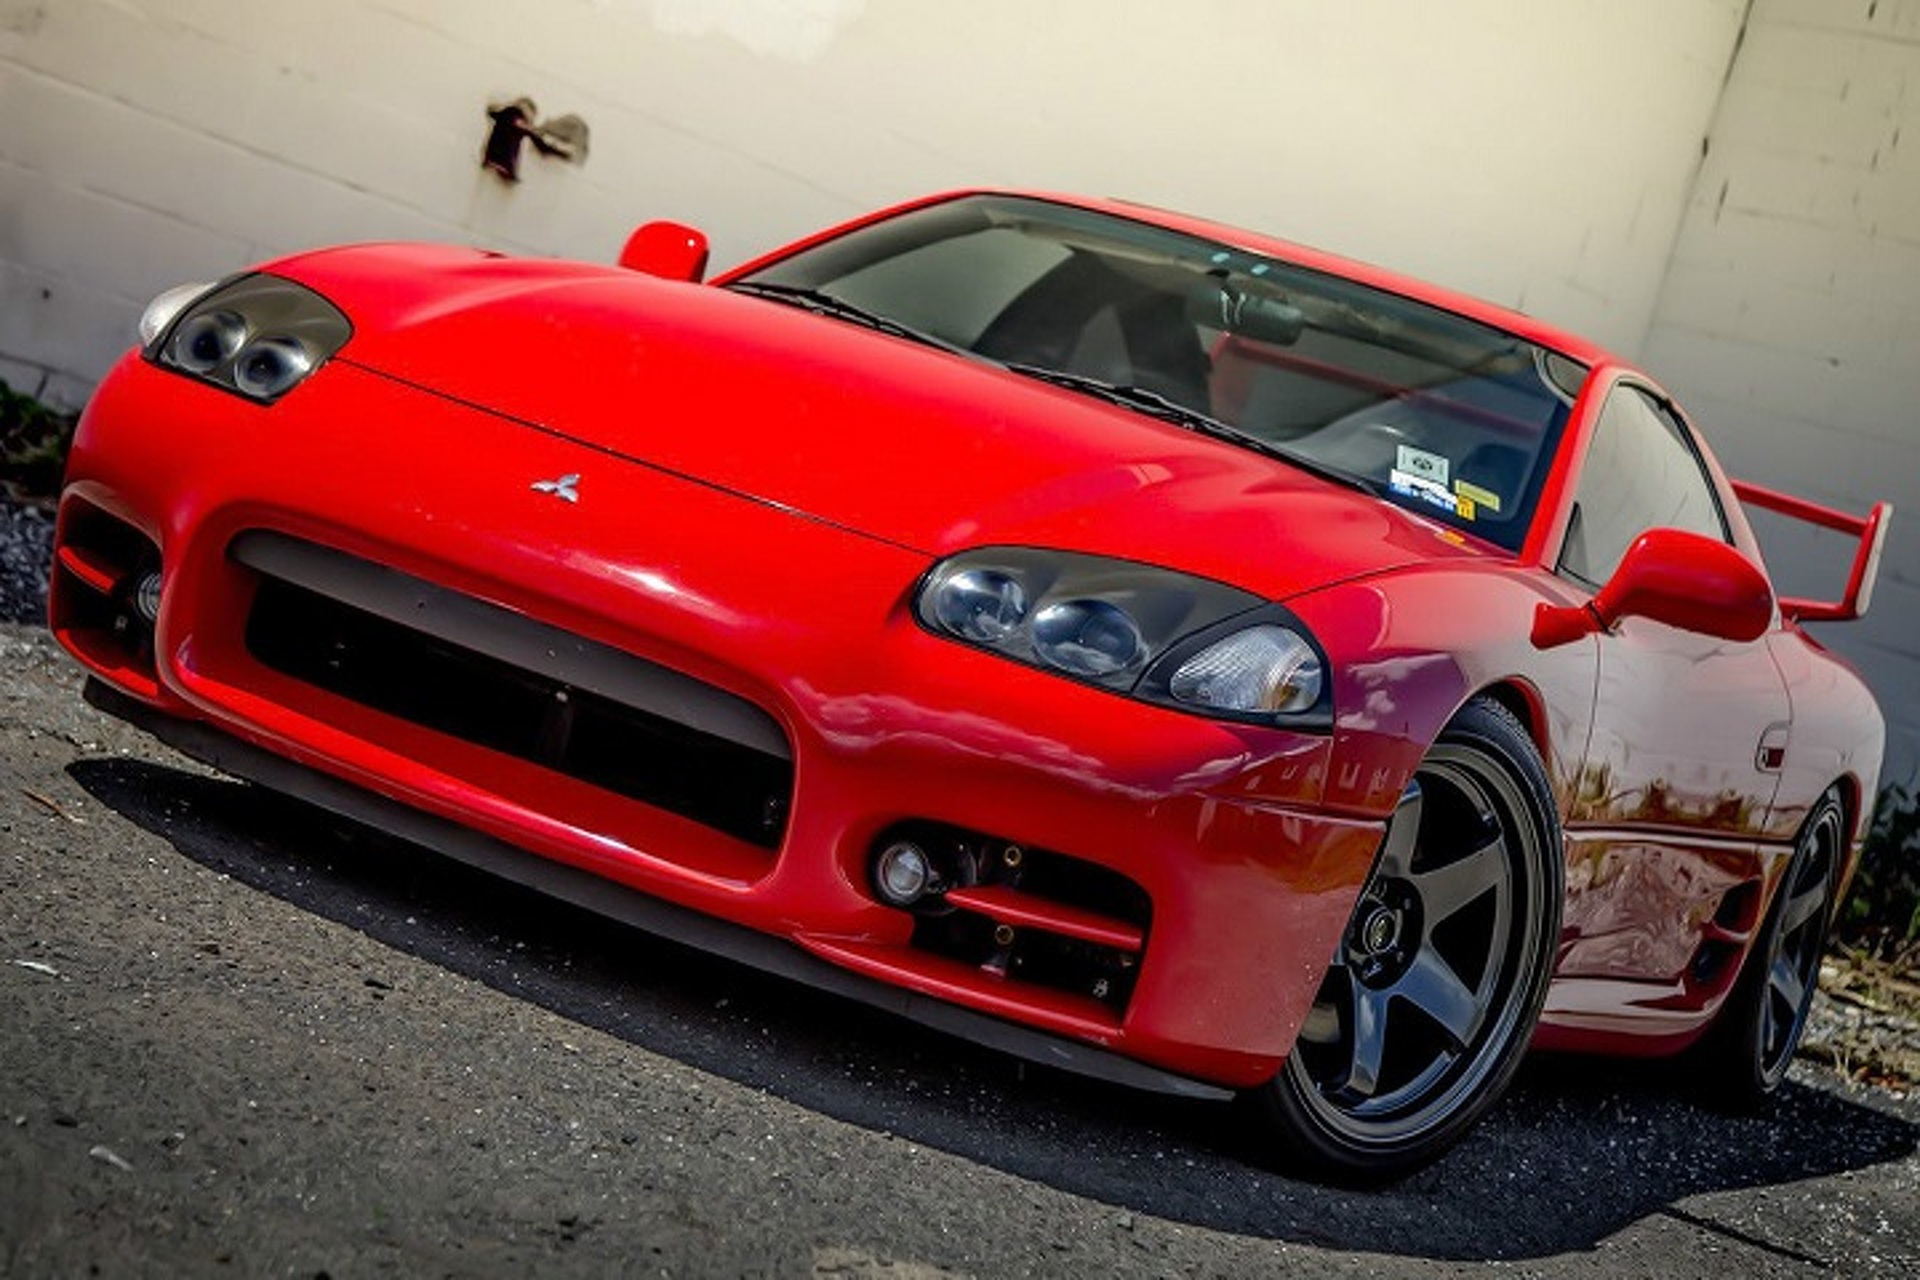 Extremely Clean 1999 Mitsubishi 3000gt Vr4 Will Bring Out The Fanboy